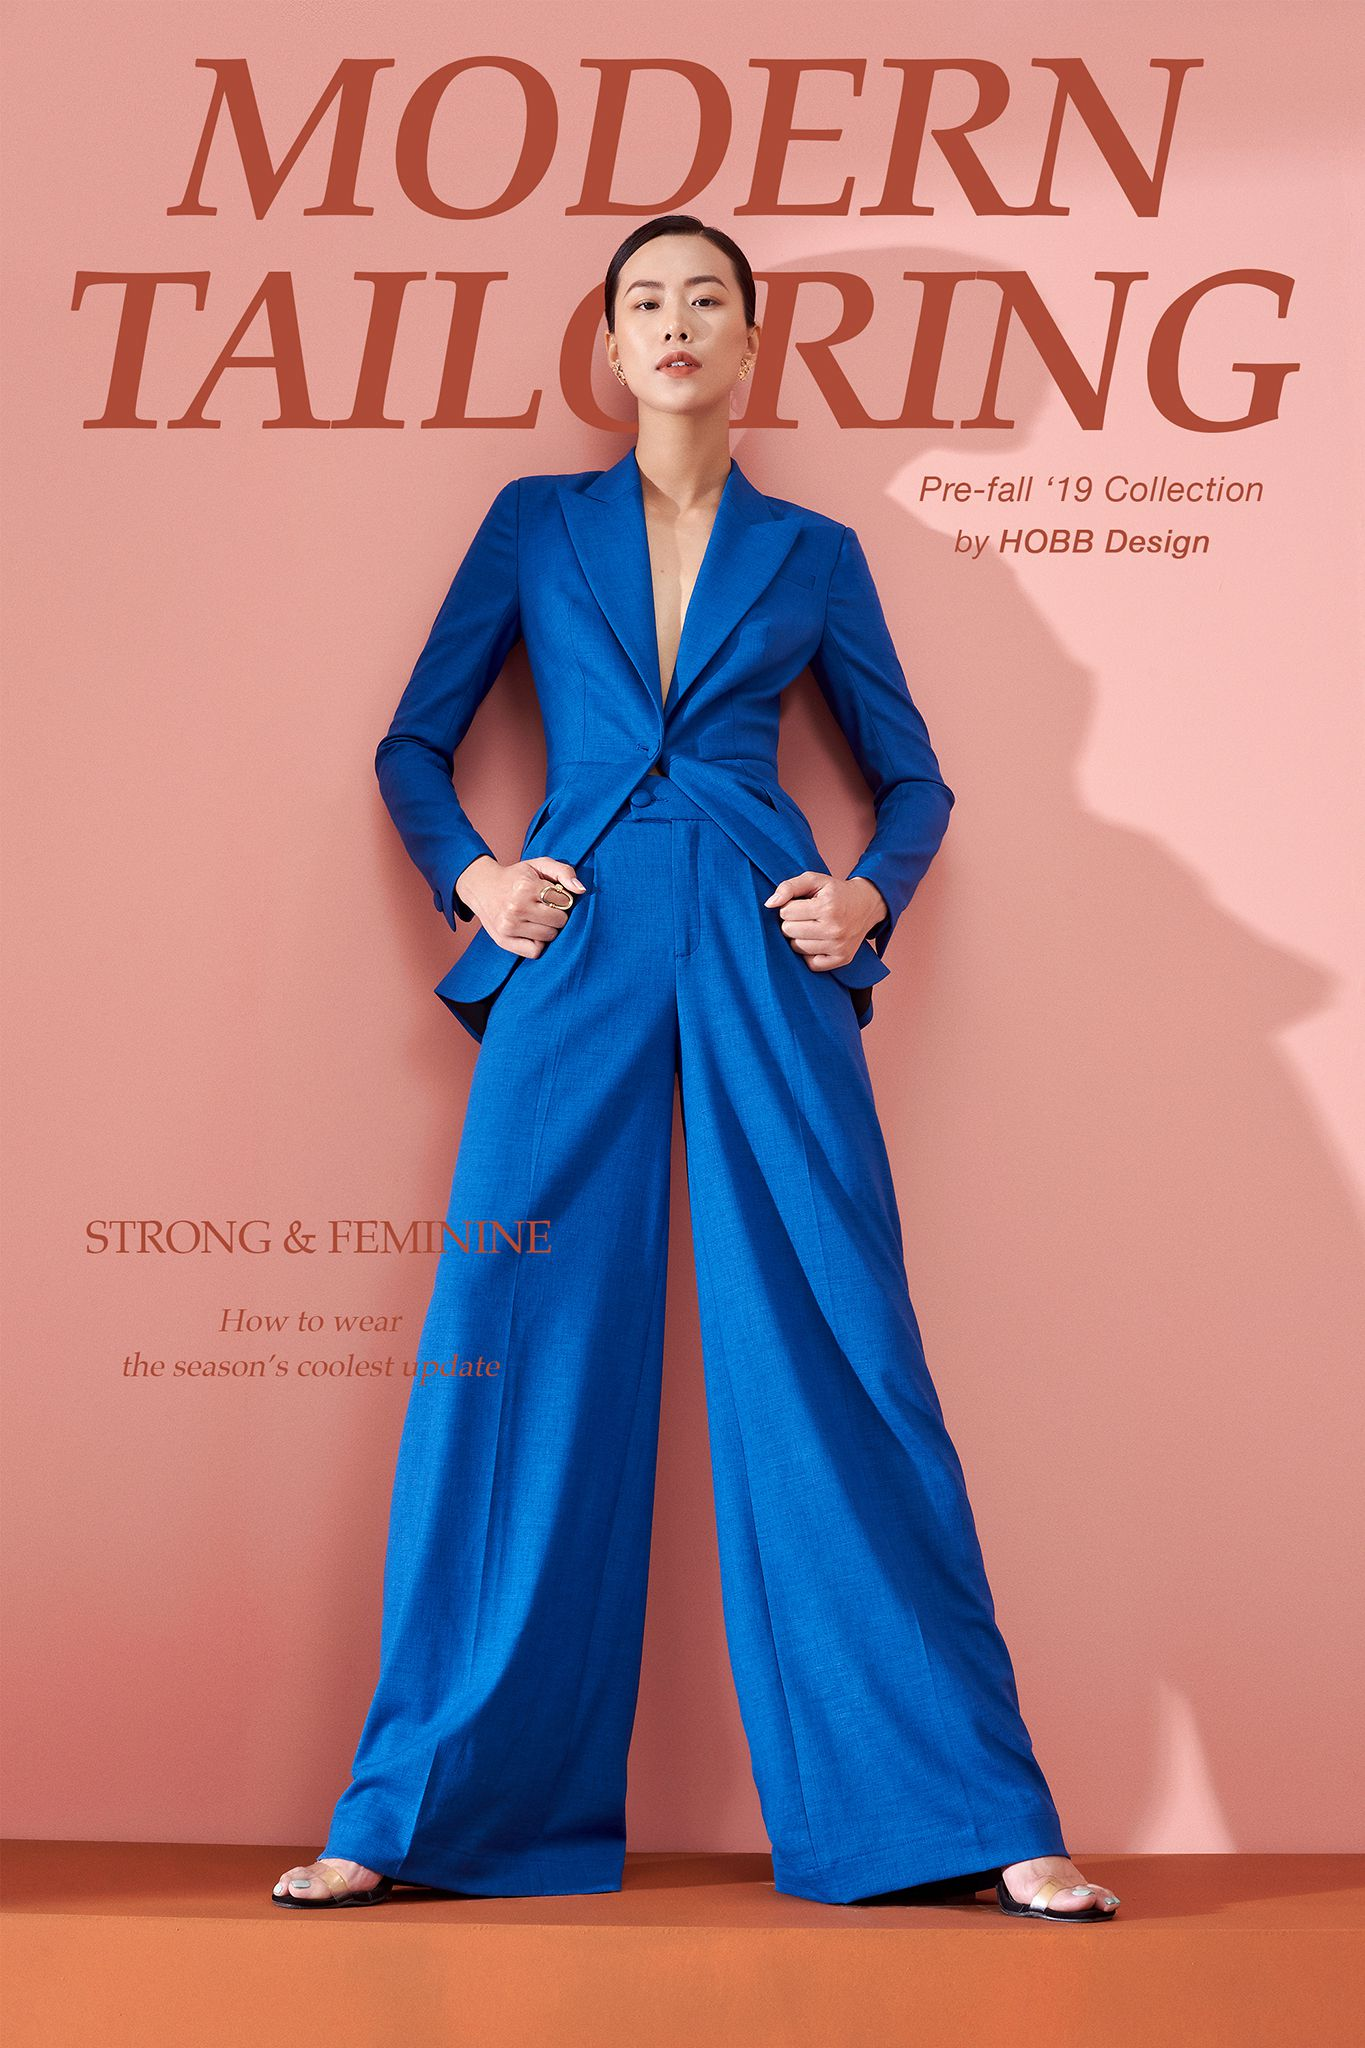 MODERN TAILORING   Pre-Fall '19 Collection